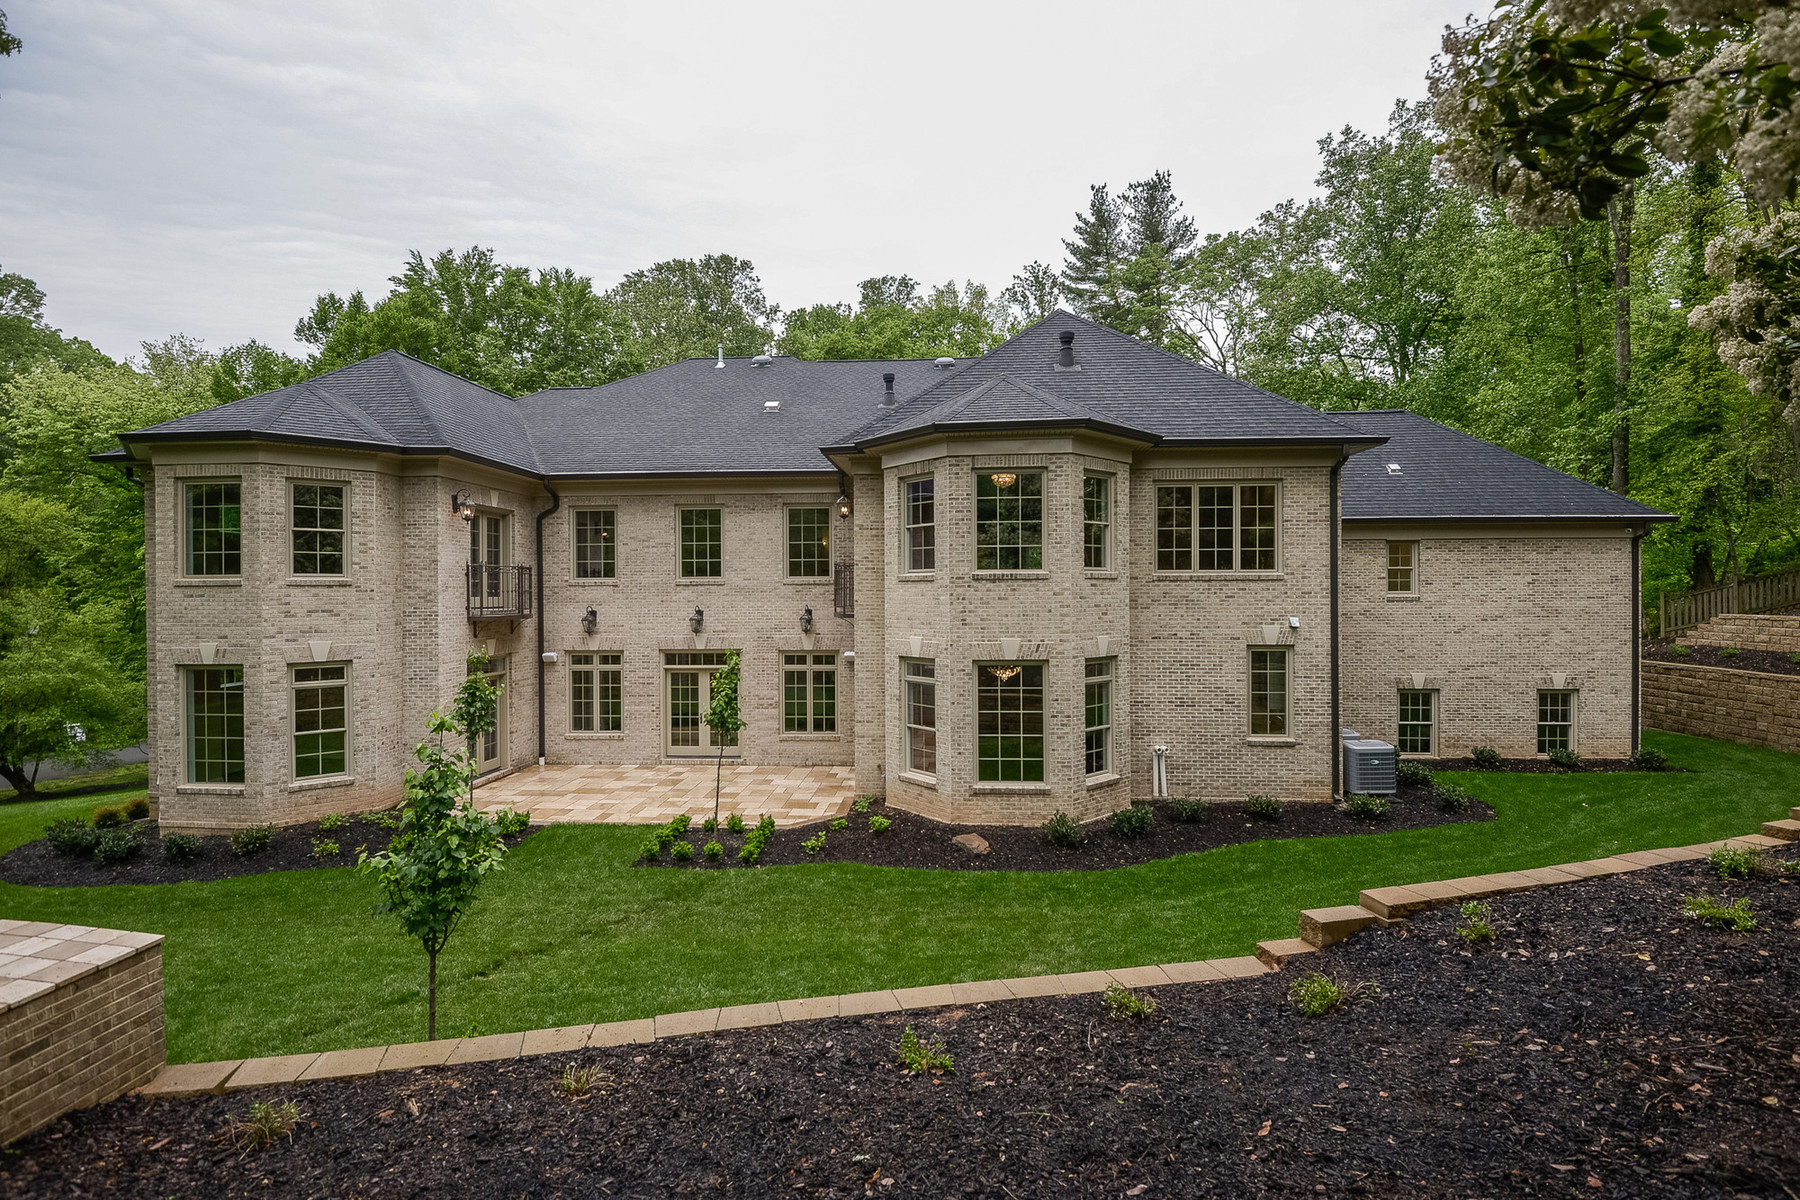 Additional photo for property listing at 6700 Lupine Lane, Mclean 6700 Lupine Ln McLean, Virginia 22101 Verenigde Staten